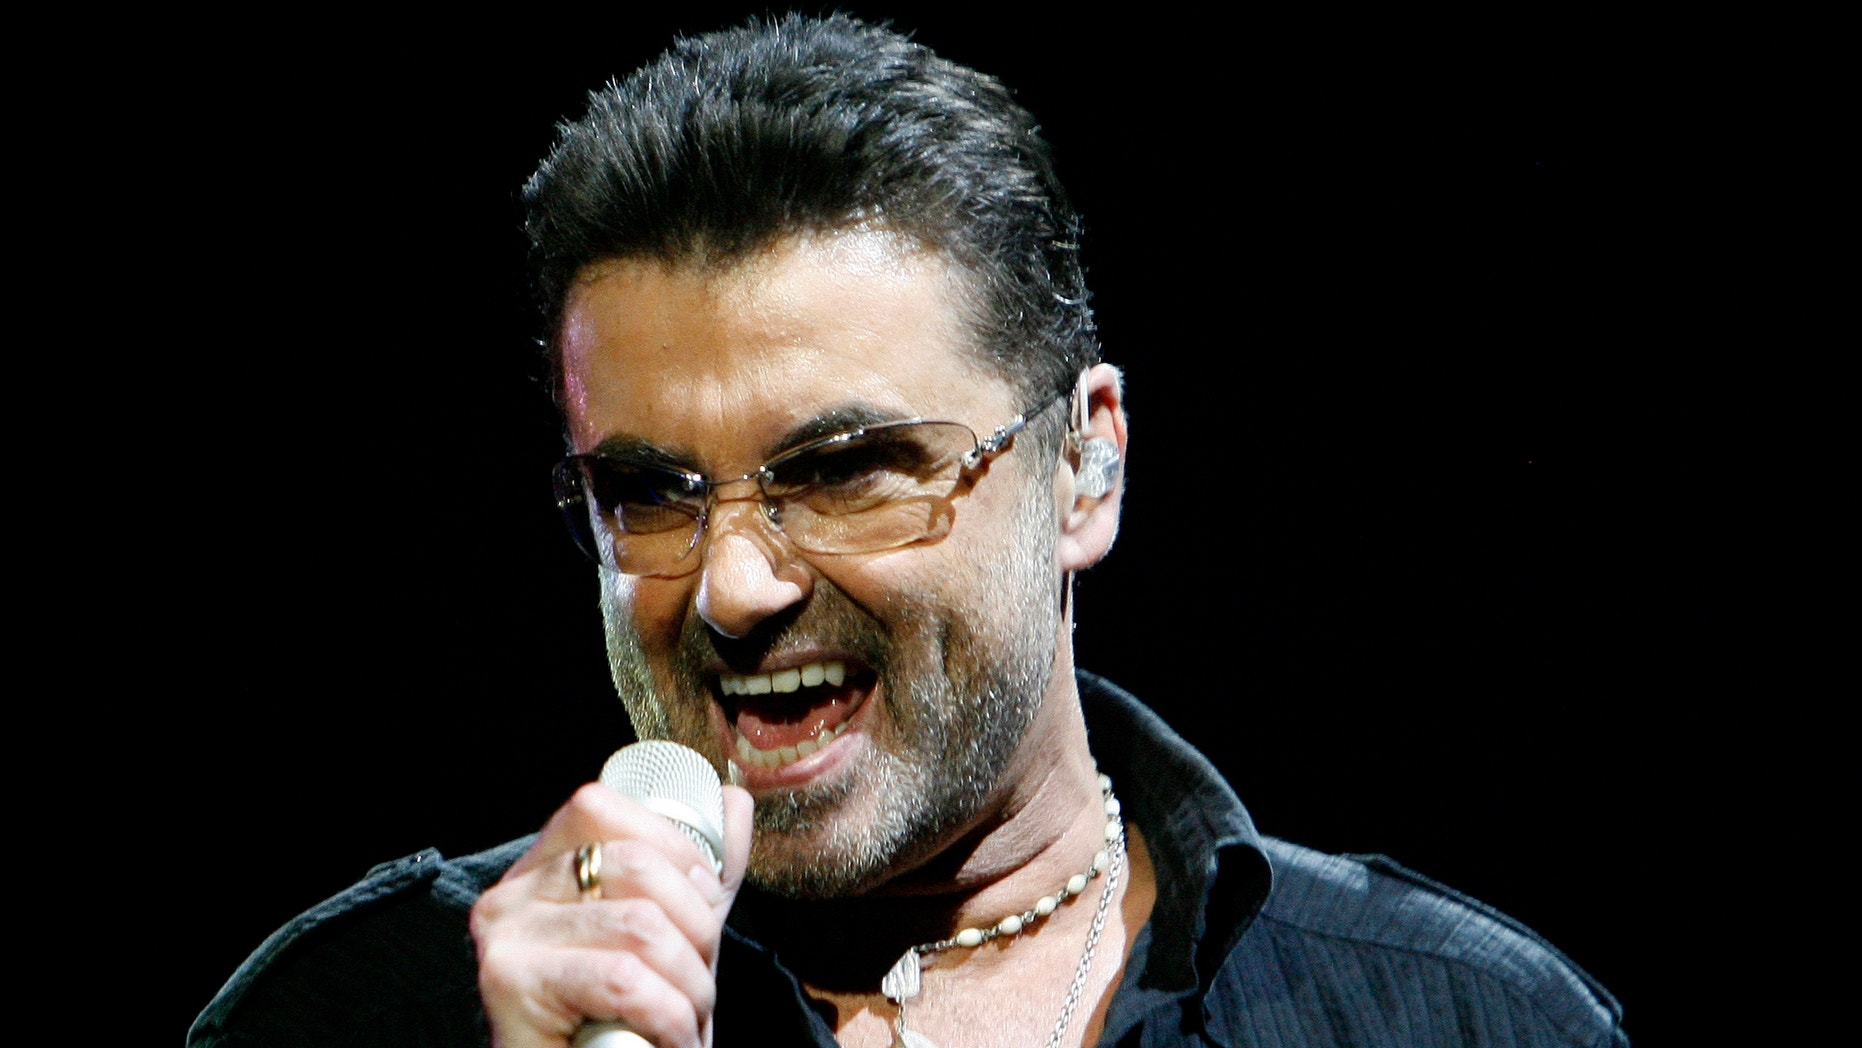 """June 25, 2008: George Michael performs in concert at the Forum during his """"Live Global Tour"""" in Inglewood, California. The singer was recently arrested in Britain on charges of drugs and driving offenses."""